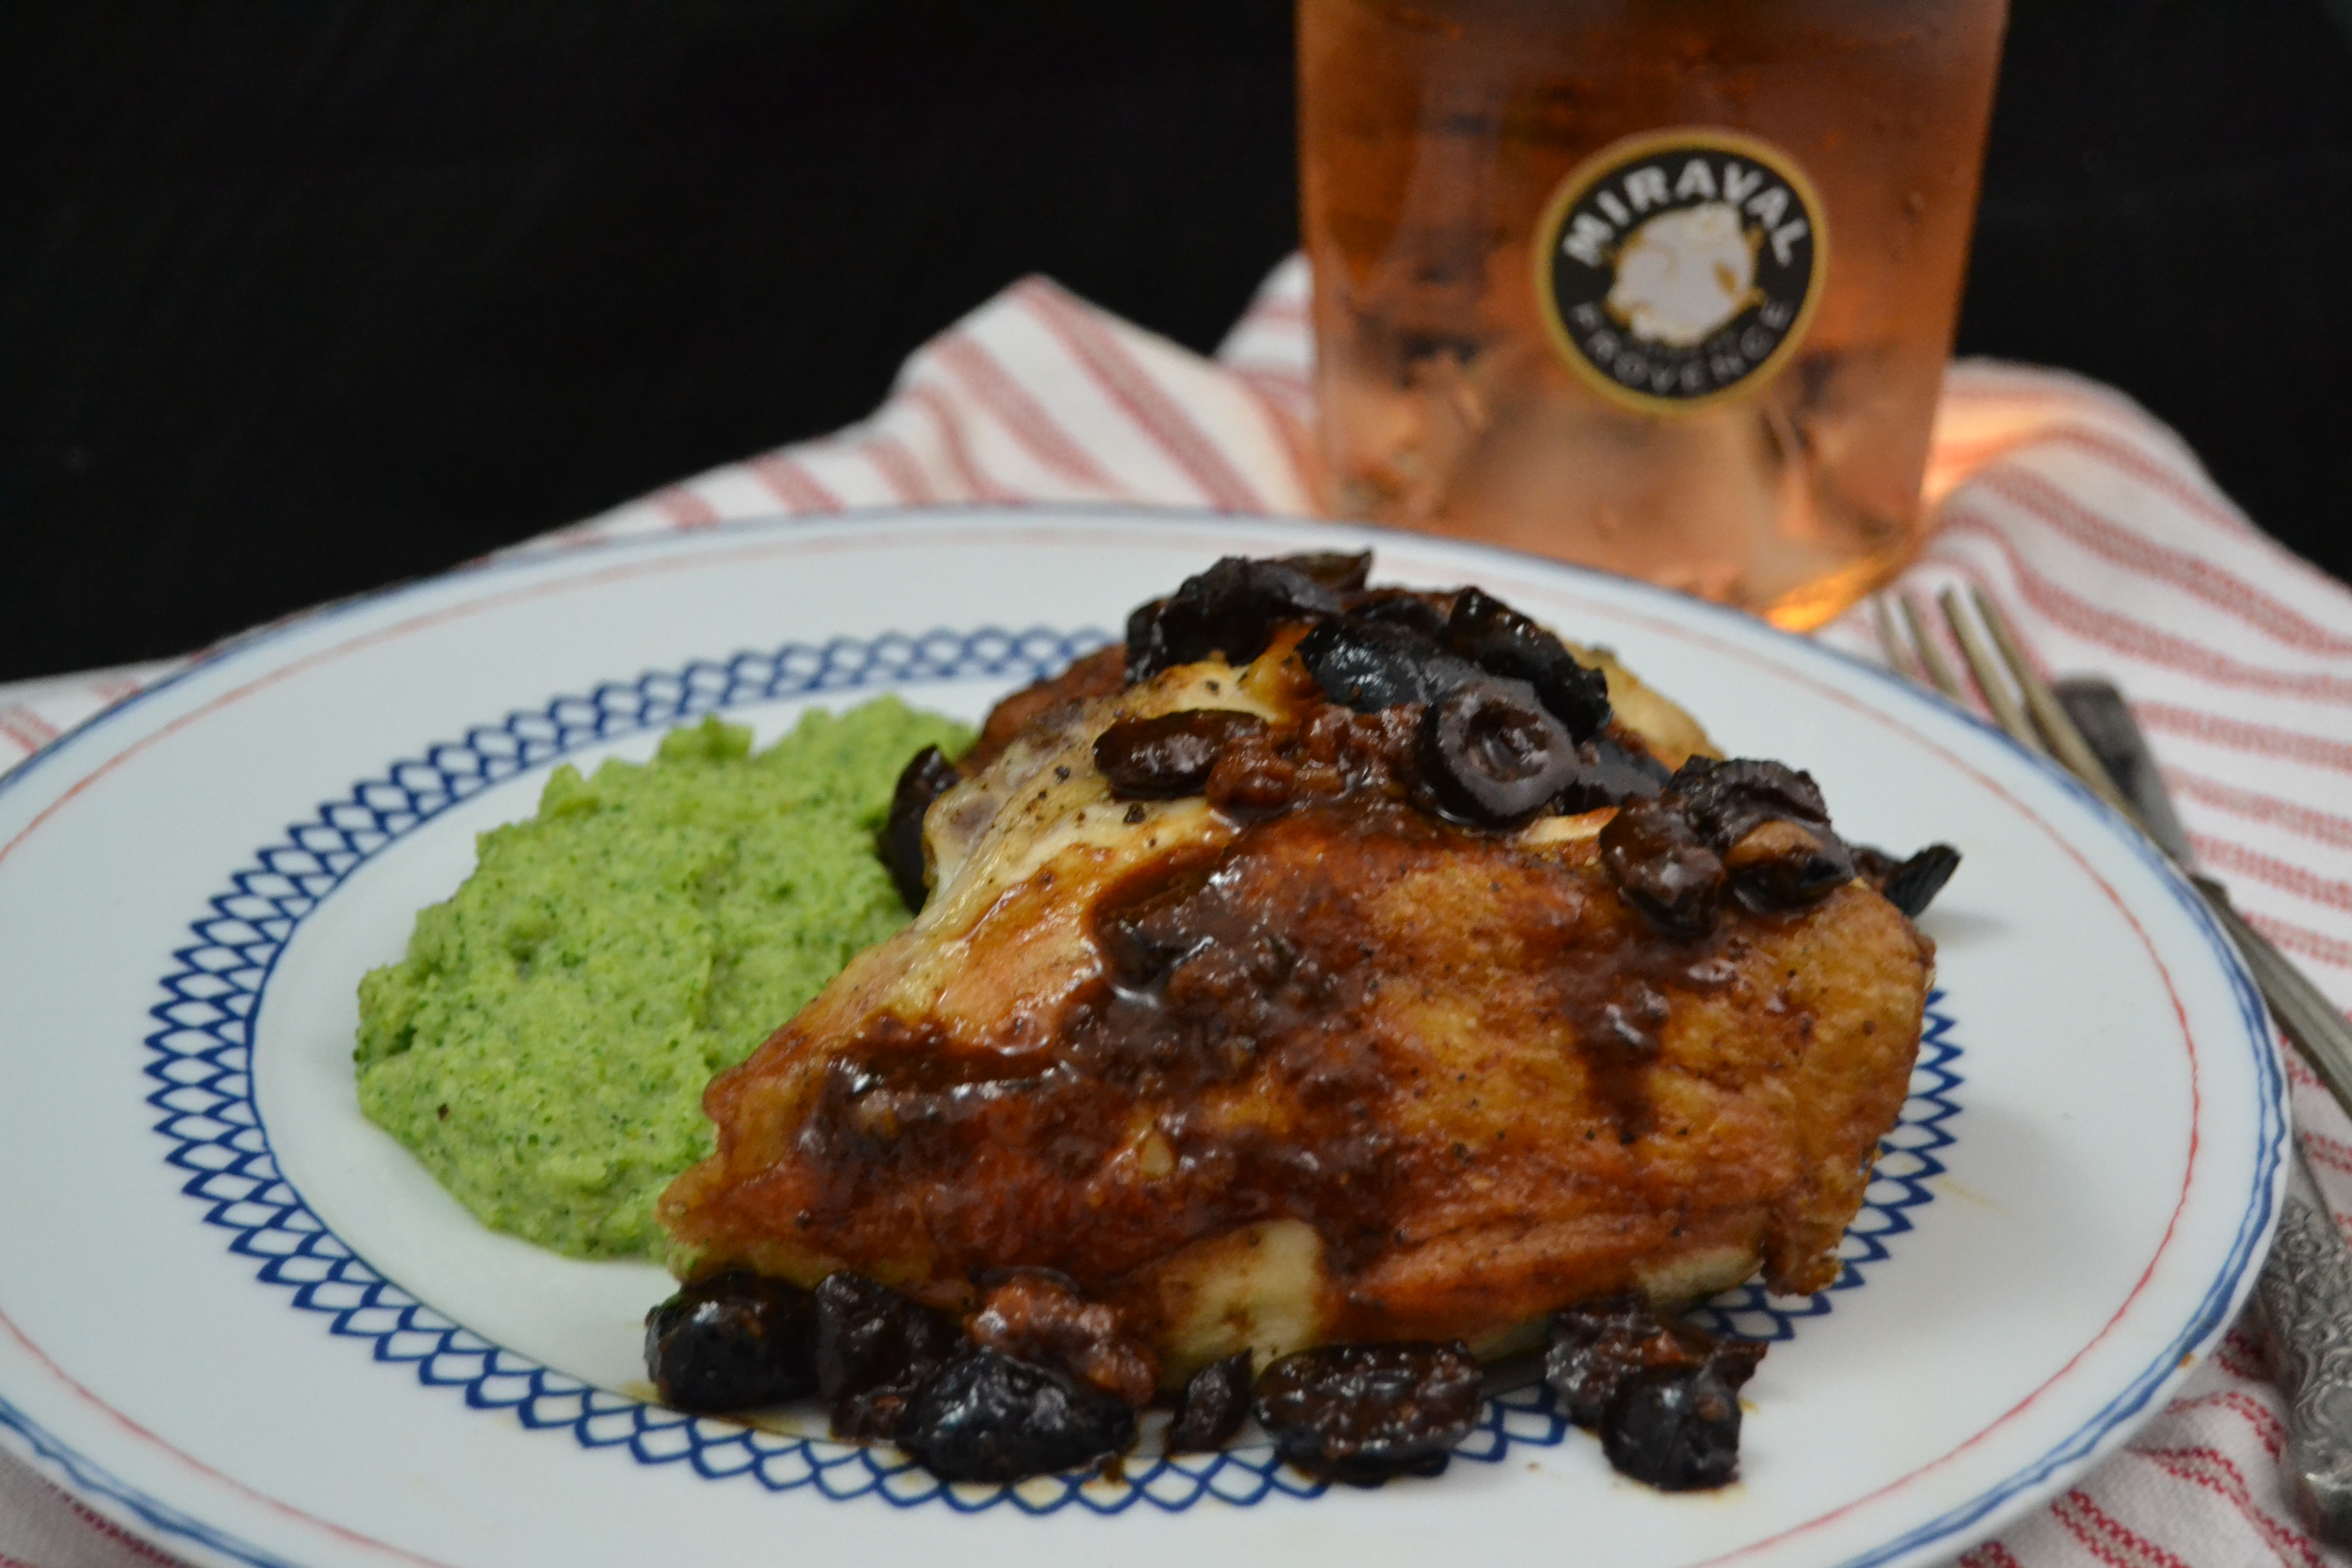 Pan-Roasted Chicken with Nyons Olives and Broccoli Puree